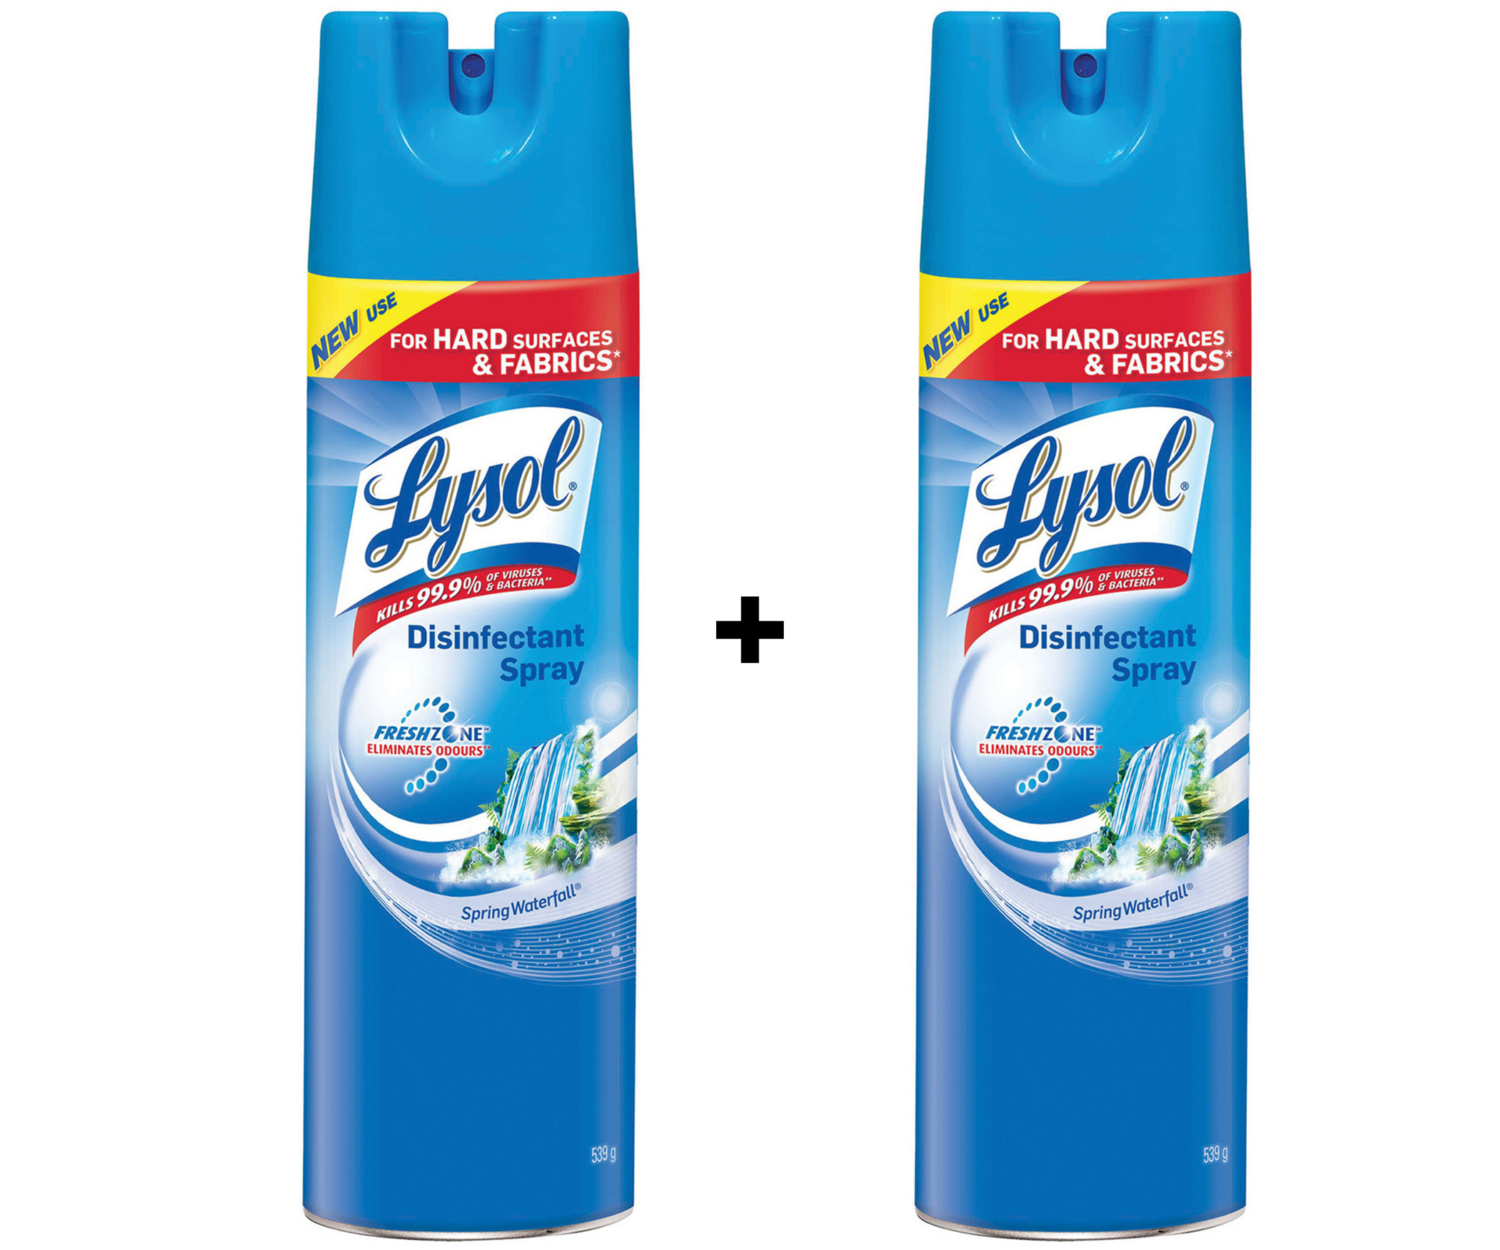 2 x Lysol Disinfectant Aerosol Disinfectant Spray, Spring Waterfall Scent, 539g-